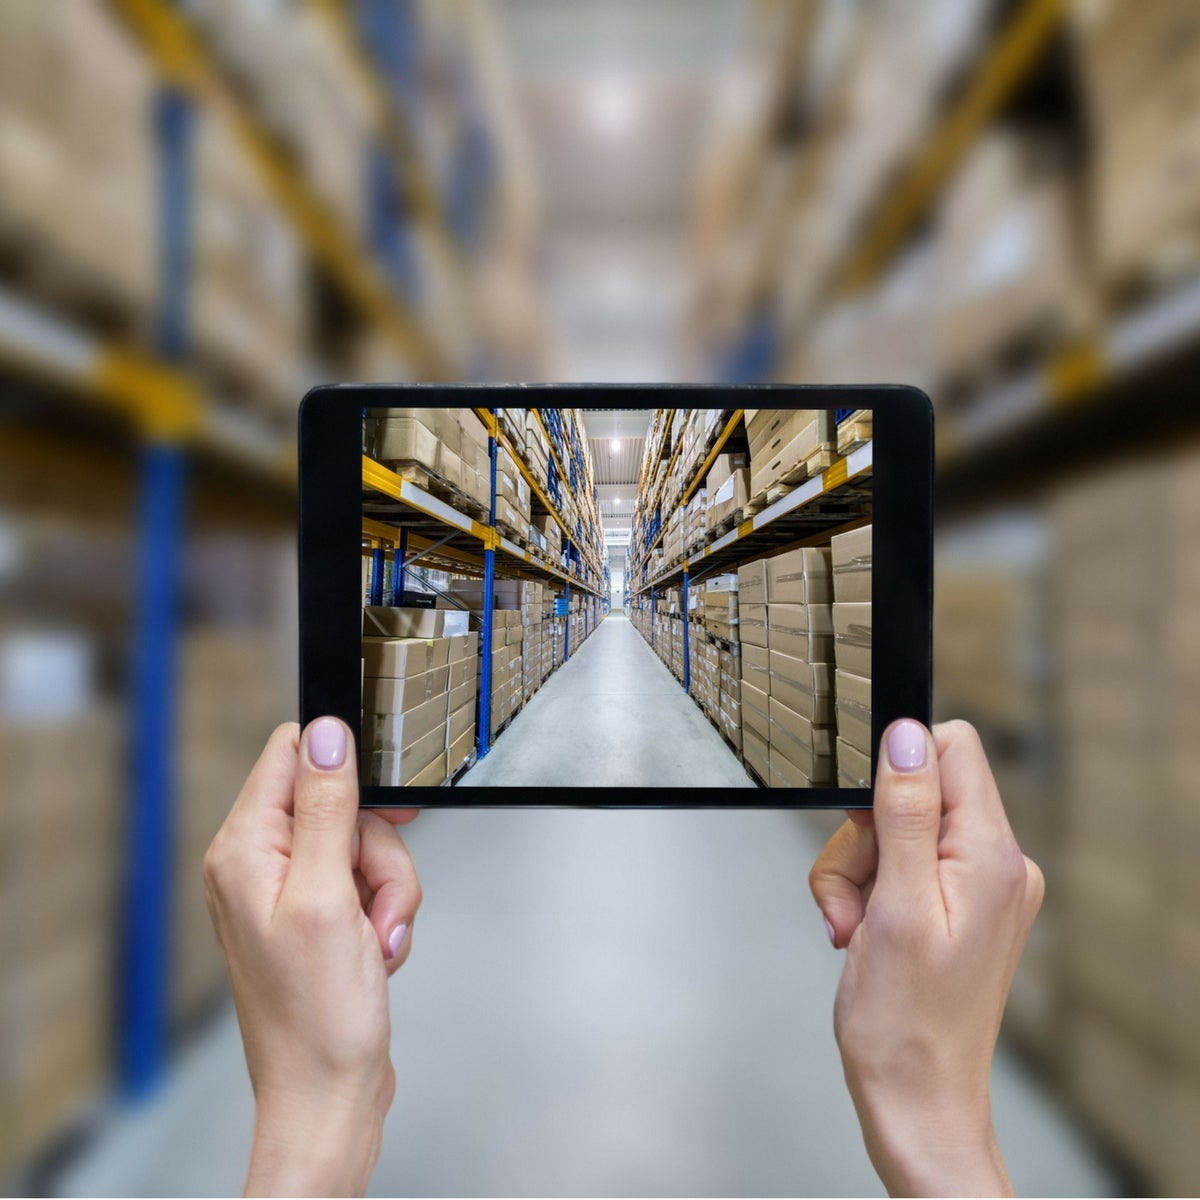 manufacturers-need-to-go-digital-now